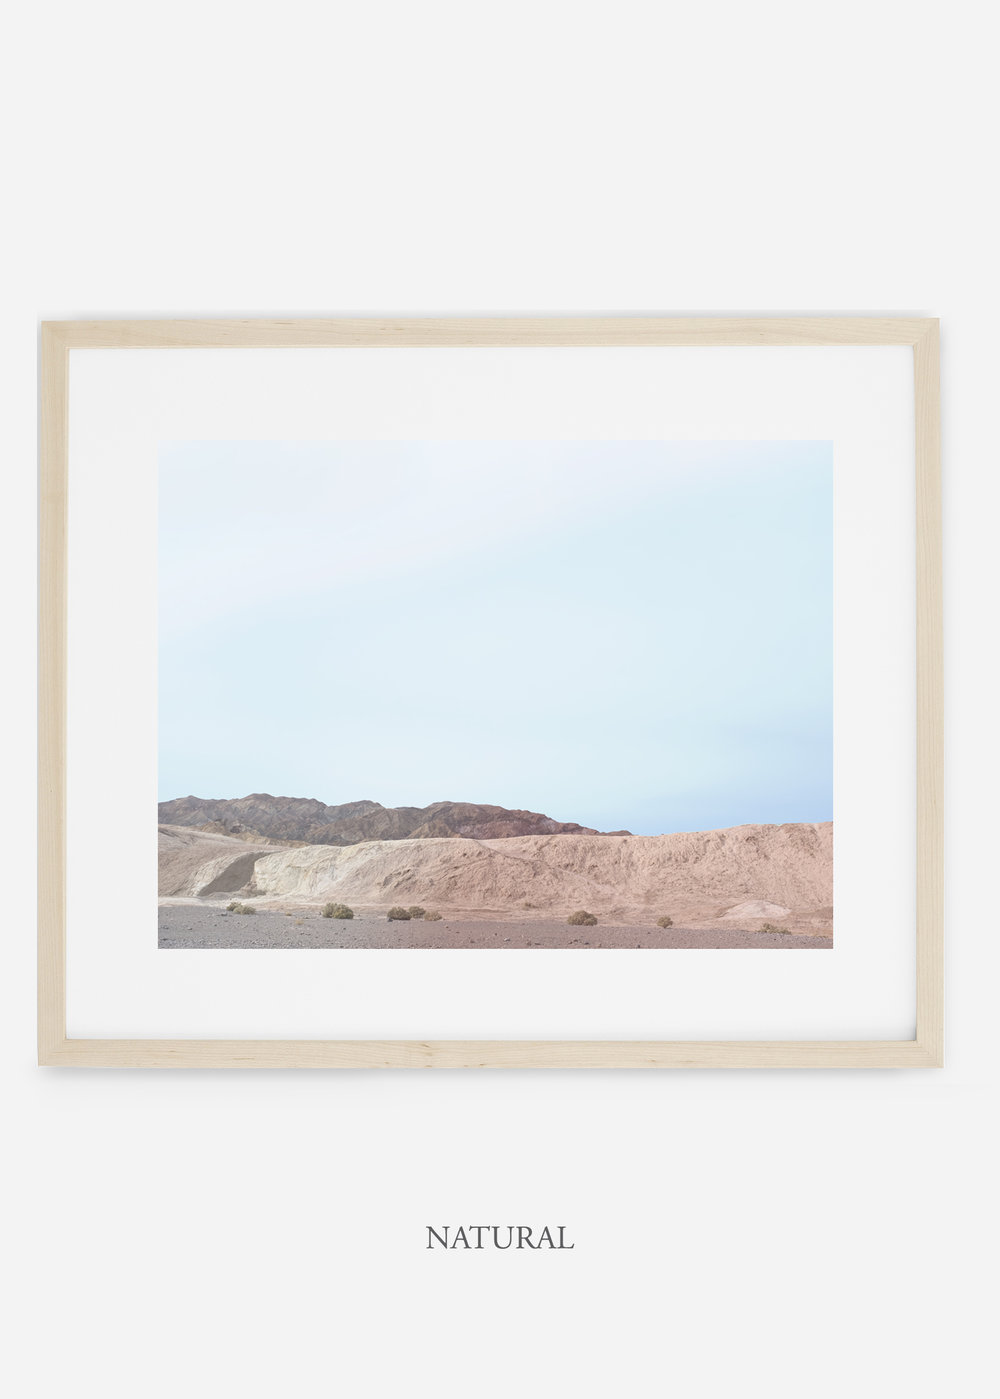 wildercalifornia_naturalframe_deathvalley_6_minimal_desert_art_interiordesign_blackandwhite.jpg